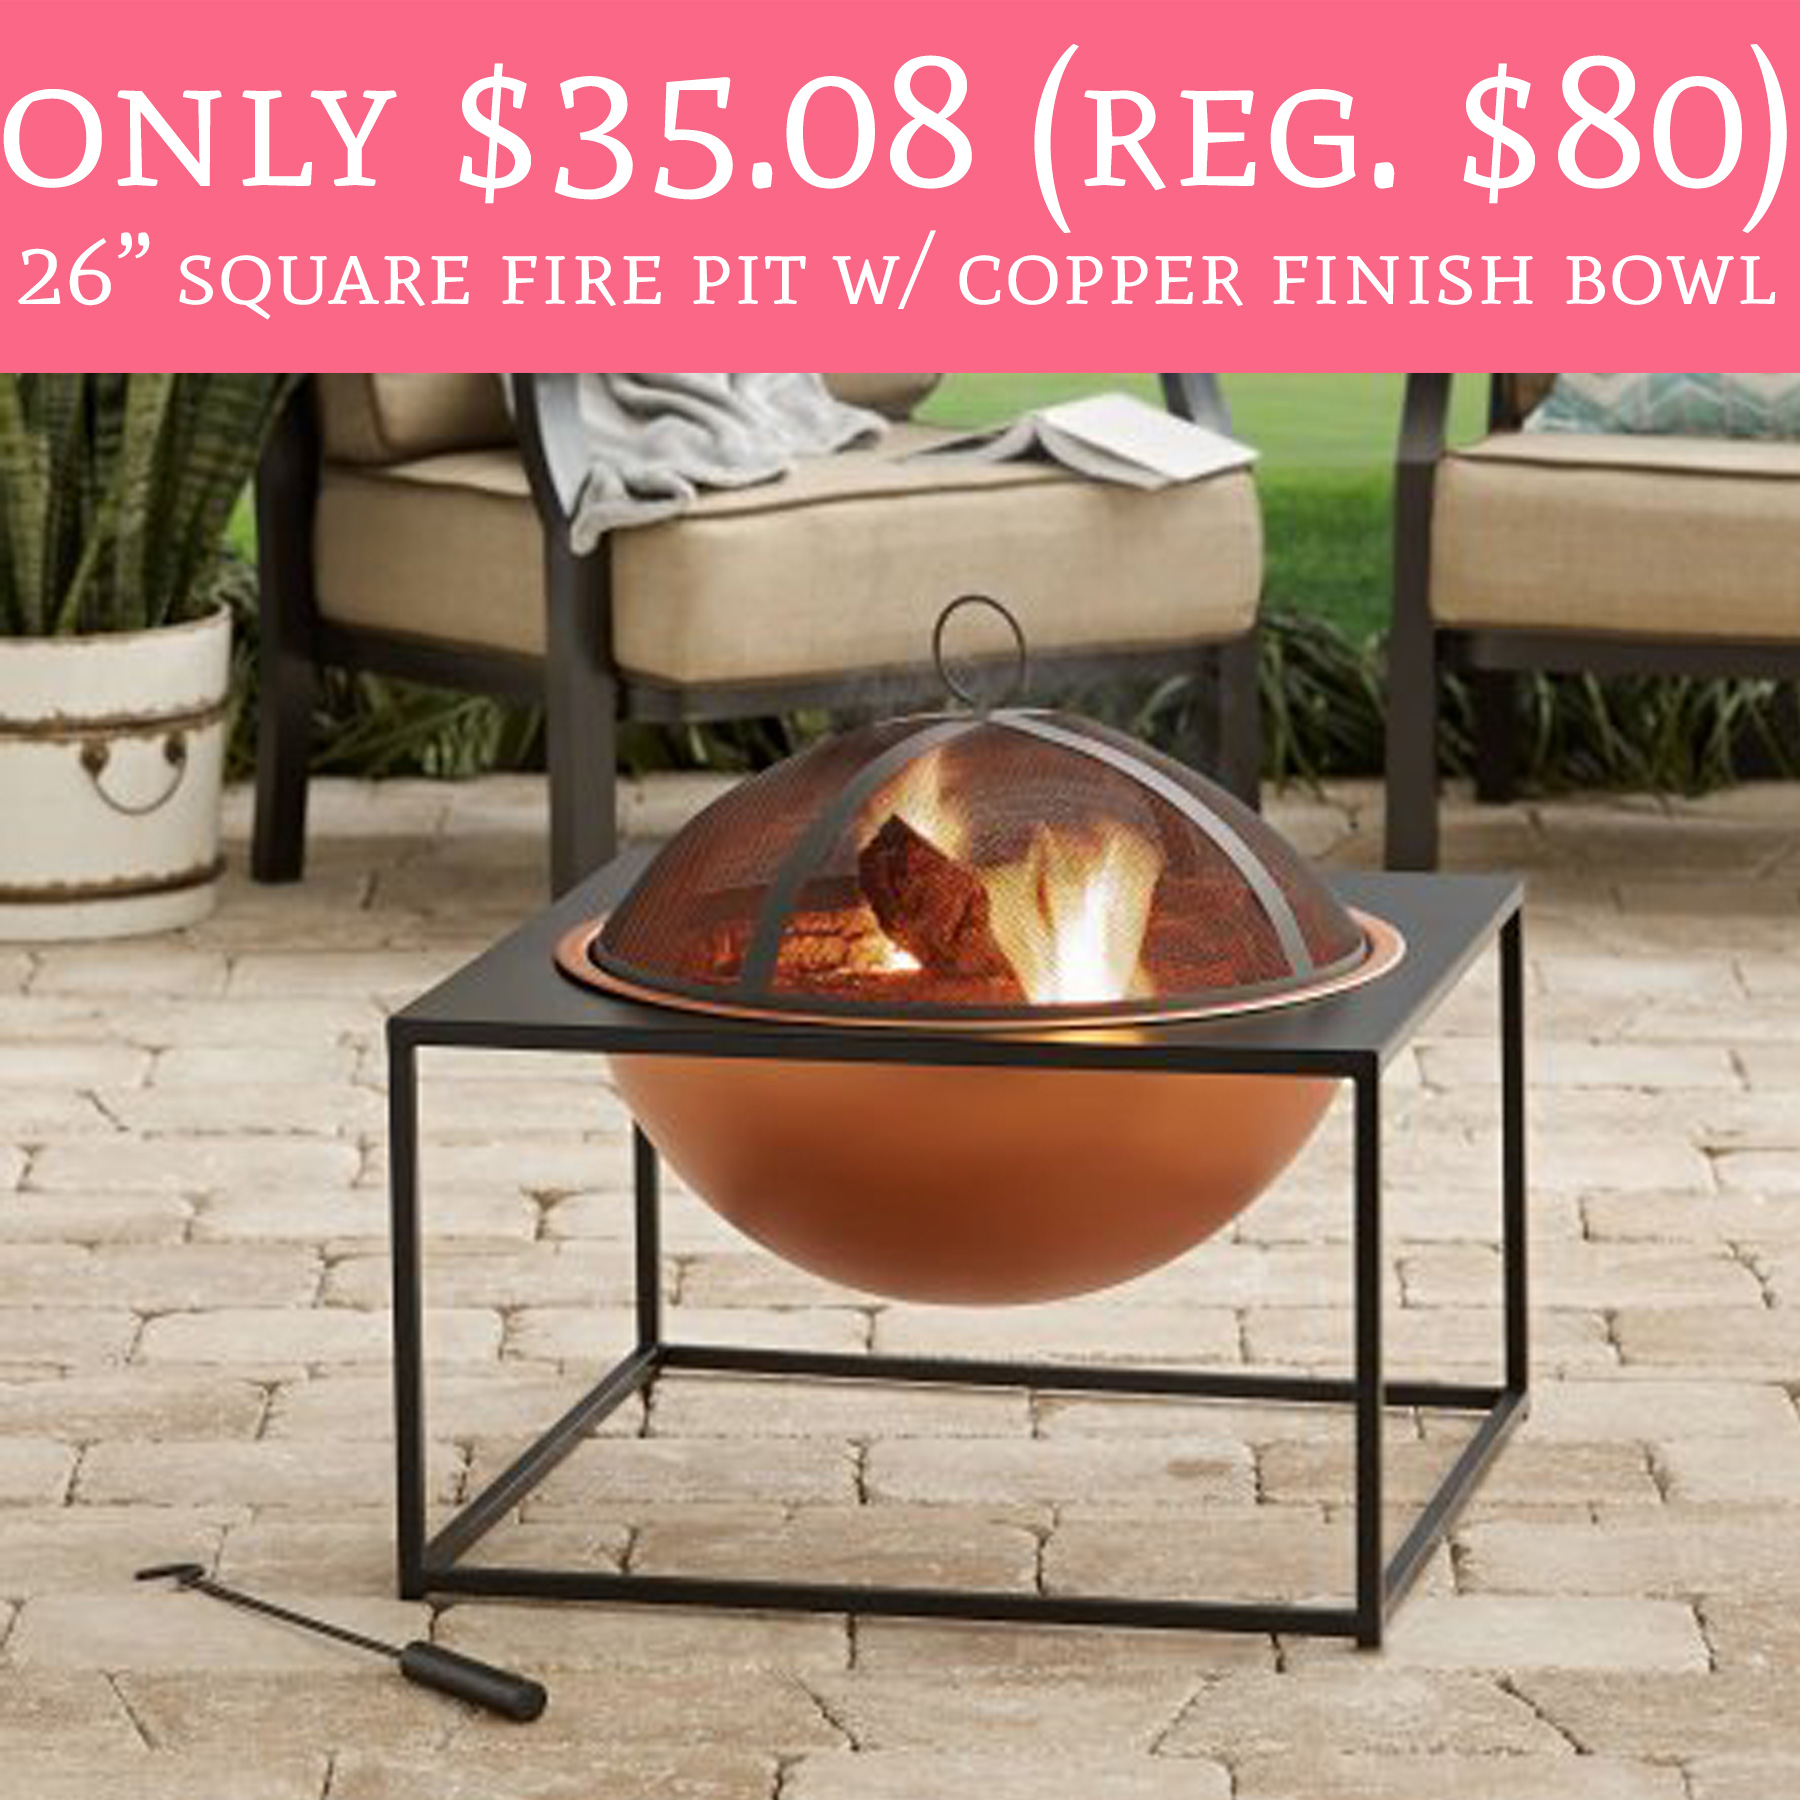 """Only $35.08 (Regular $80) 26"""" Square Fire Pit w/ Copper ..."""